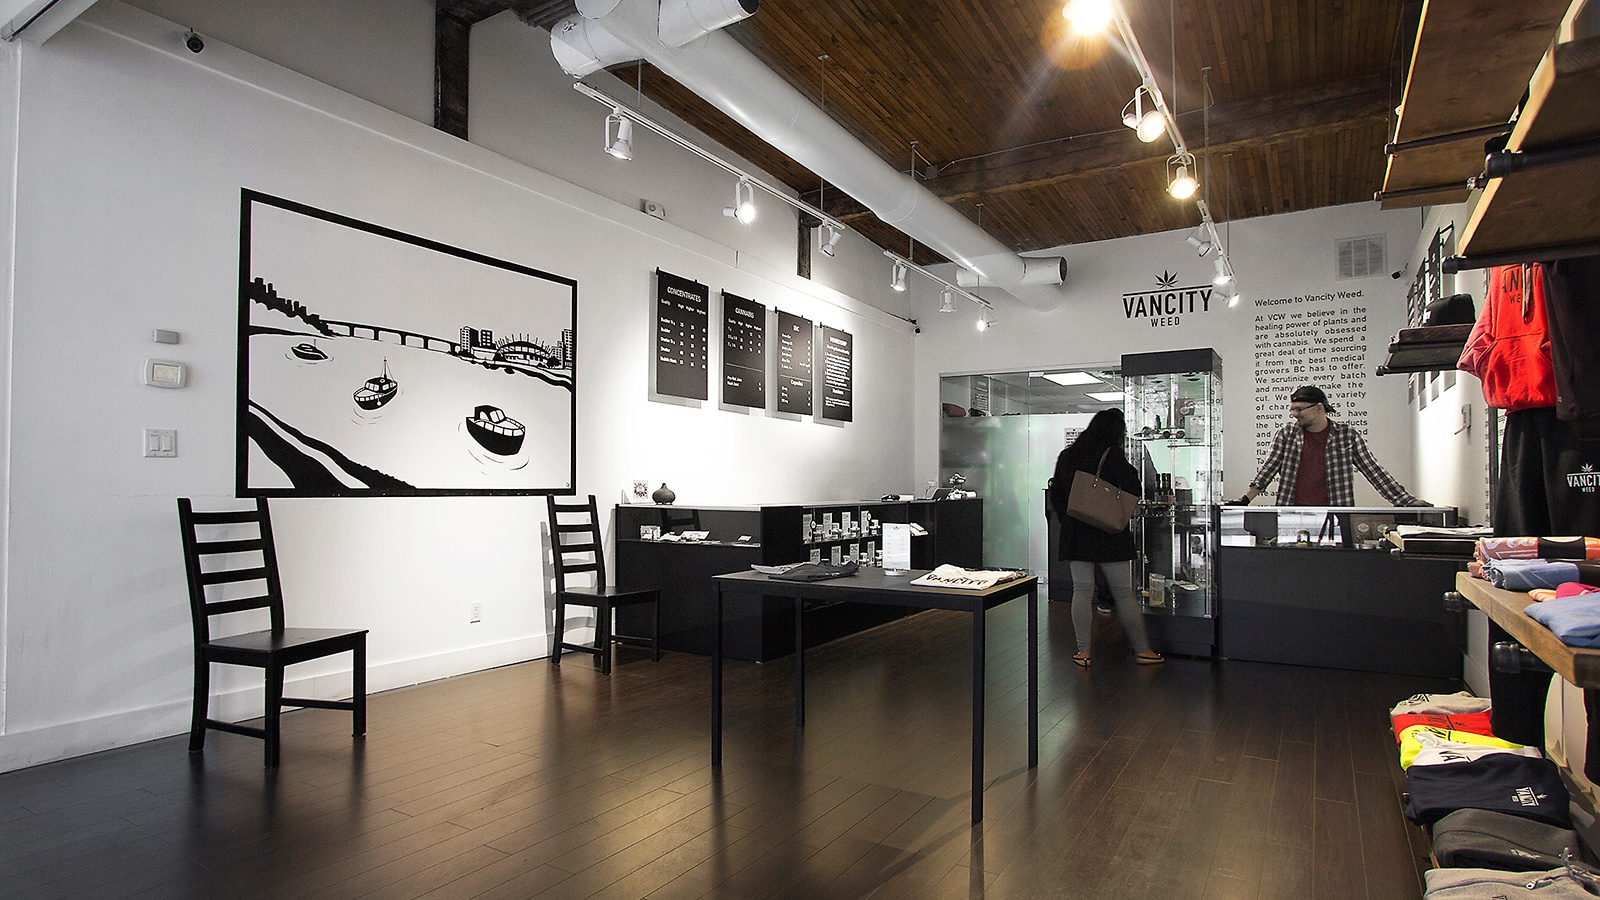 5-Easy-Ways-to-Grow-Your-Dispensary-with-Digital-Signage.jpg